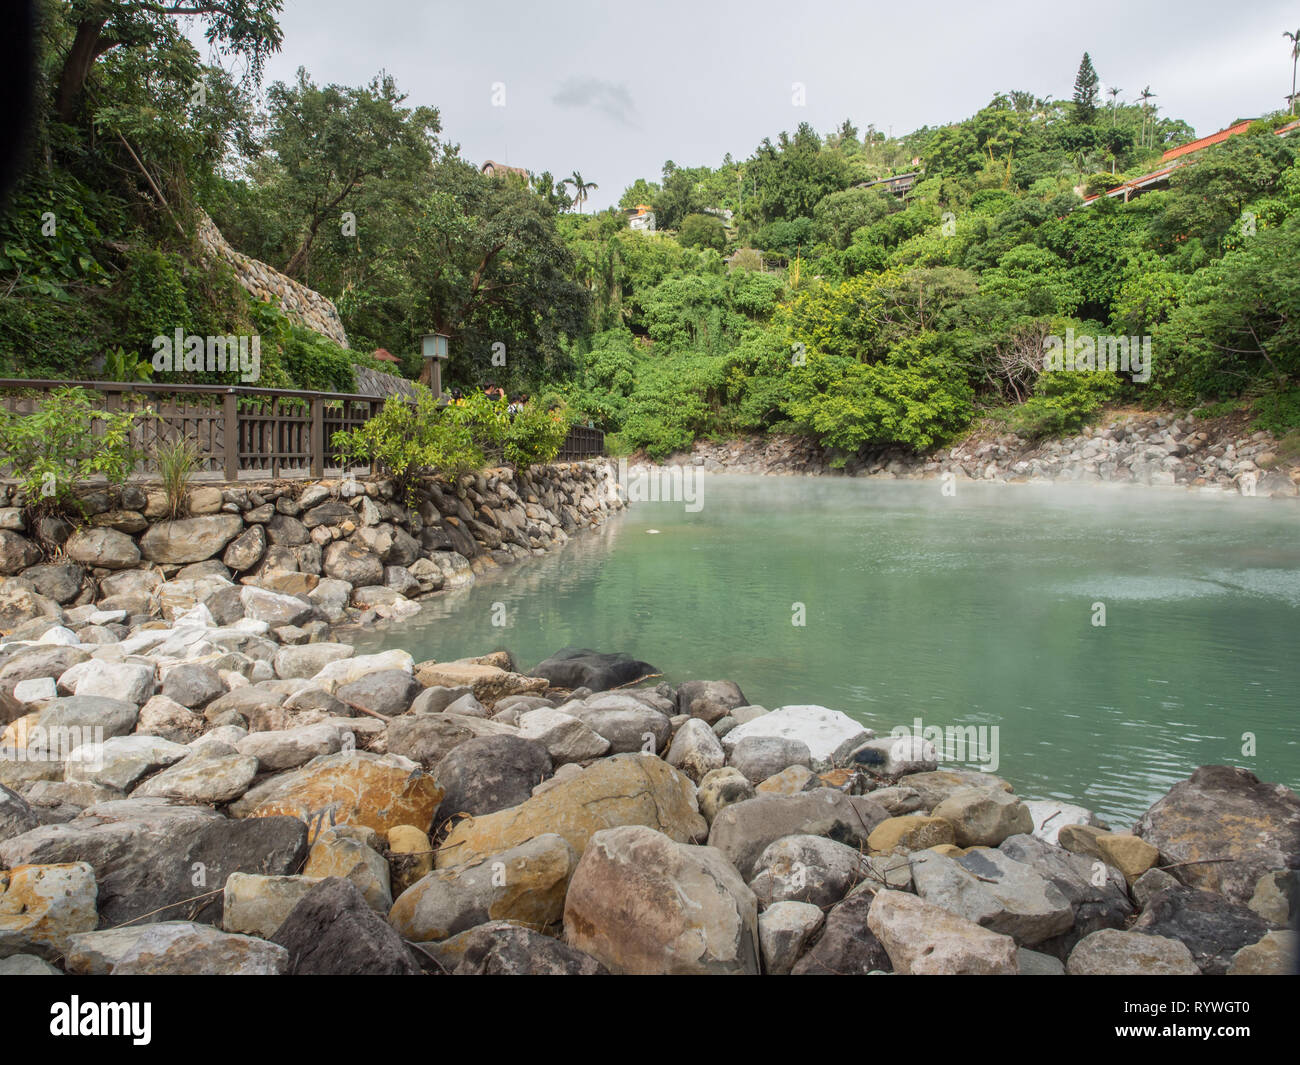 Xinbeitou, Taiwan - October 06, 2016: The natural hot springs of boiling water. Asia. - Stock Image